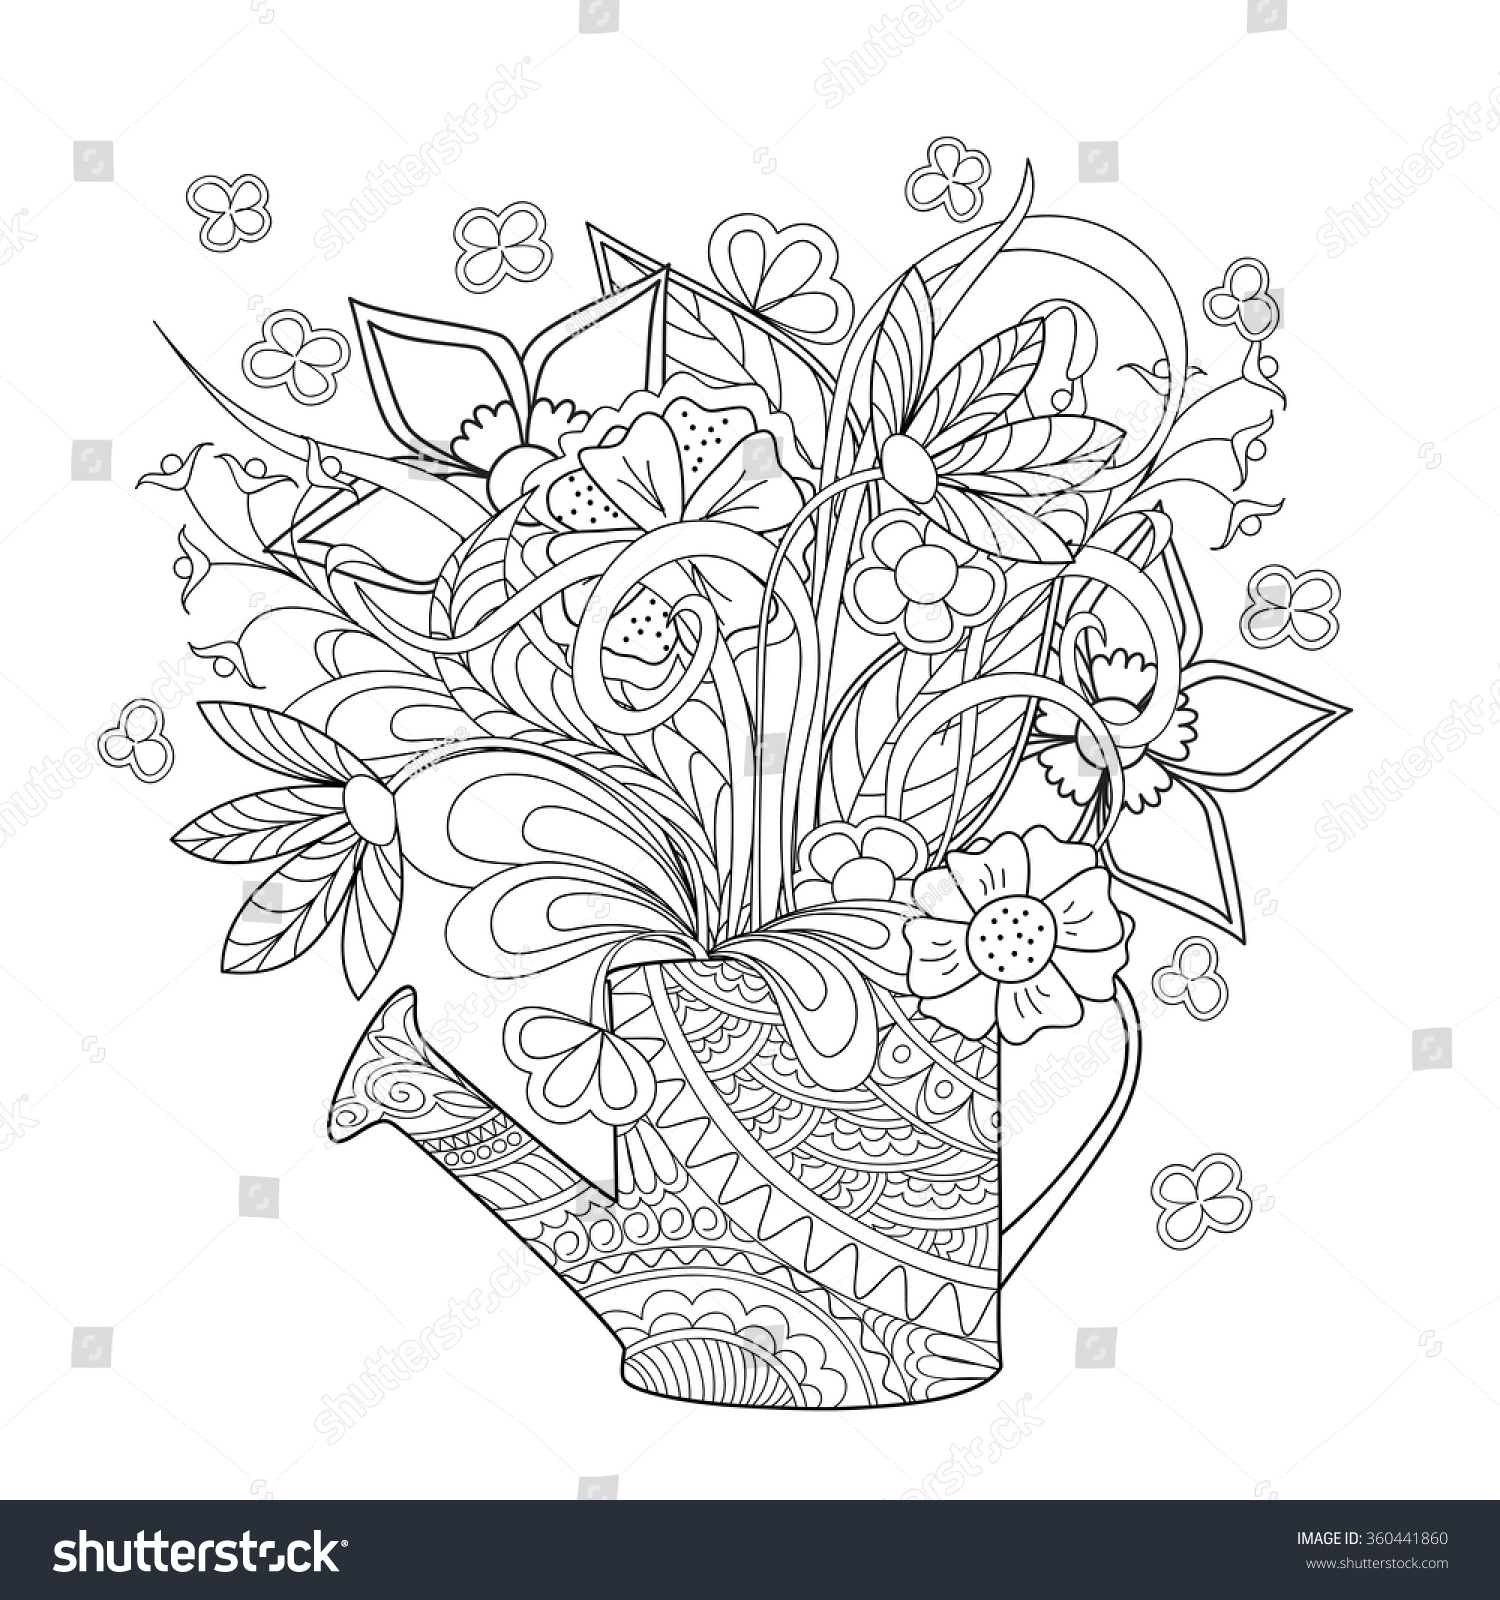 Hand Drawn Decorated Image Watering Can Stock Vector ...